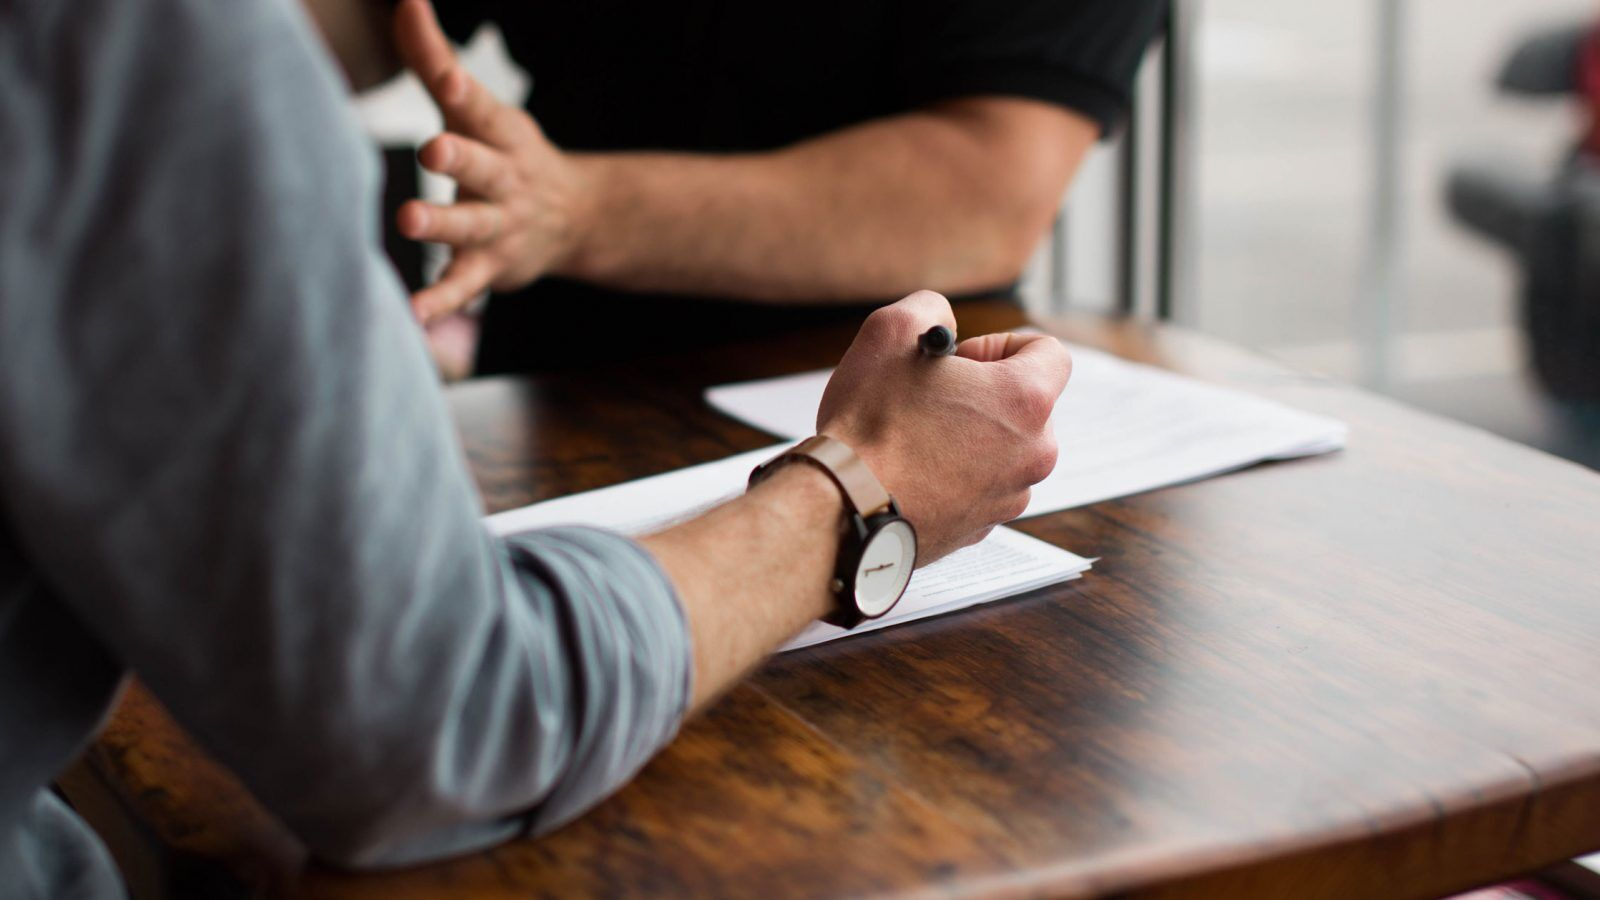 Accounting FAQs: What Types of Paperwork Do I Need for New Employees?